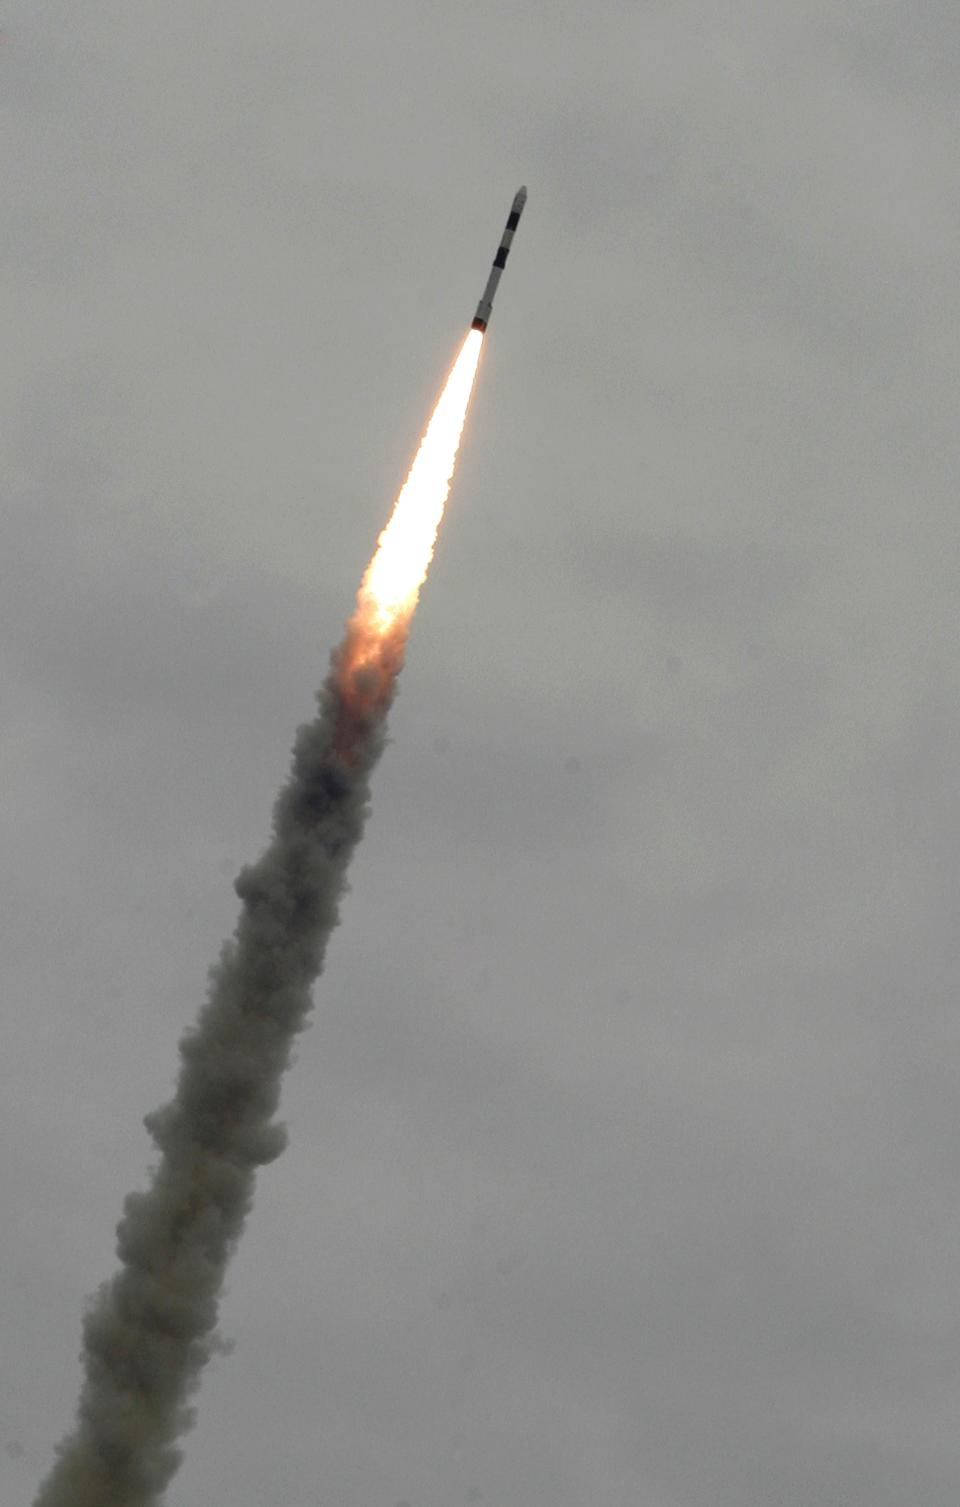 India's Polar Satellite Launch Vehicle PSLVC-21 lifts off  carrying one  French and one Japanese satellite from a launch pad in Sriharikota, southern India, Sunday, Sept. 9, 2012. The launch marked the 100th mission for the Indian Space Research Organization (ISRO). (AP Photo/Arun Sankar K.)